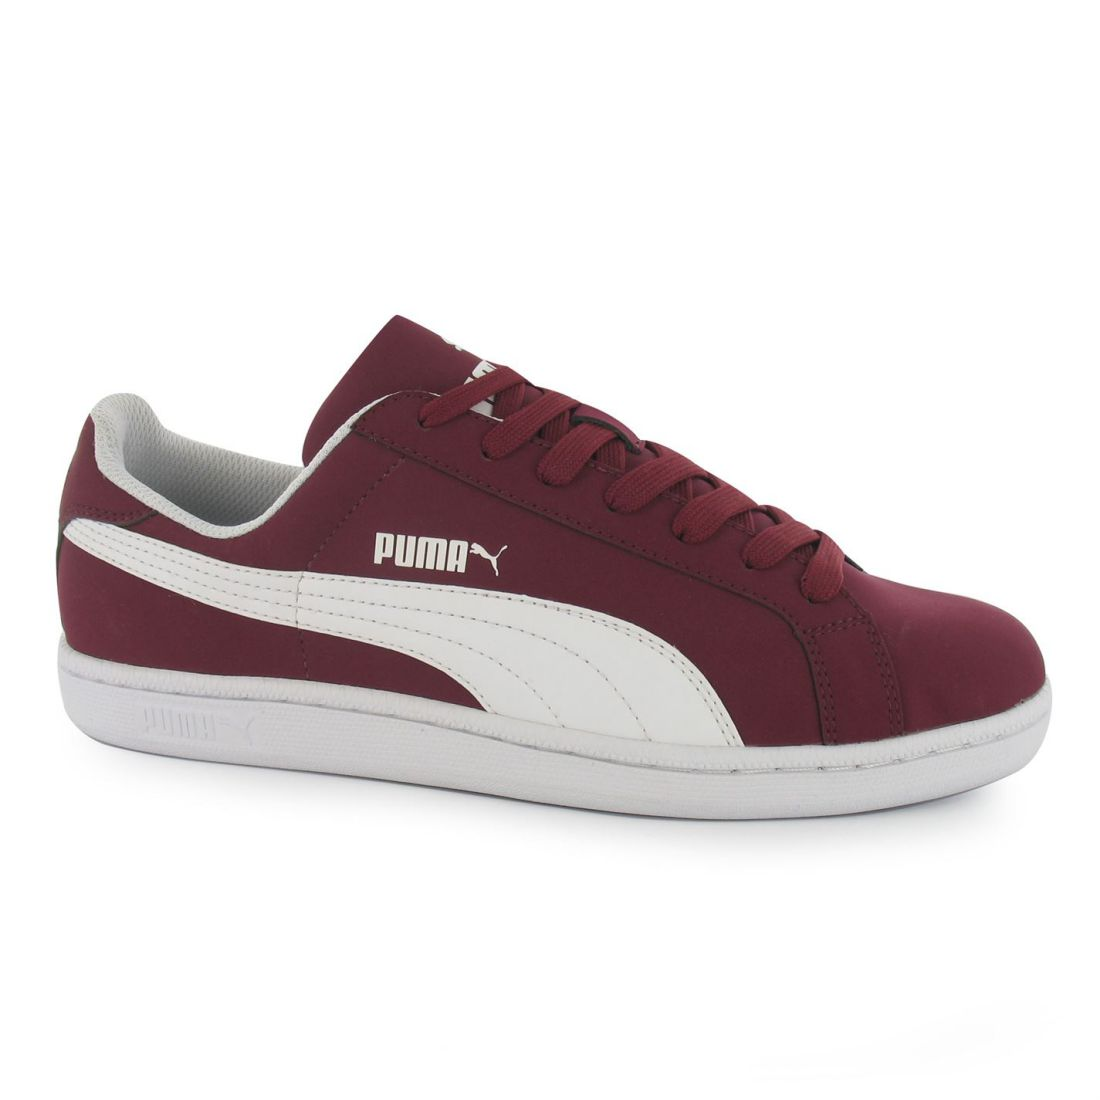 2caf05c48cd Free postage. Image is loading Puma-Smash-NB-Suede-Mens-Shoes